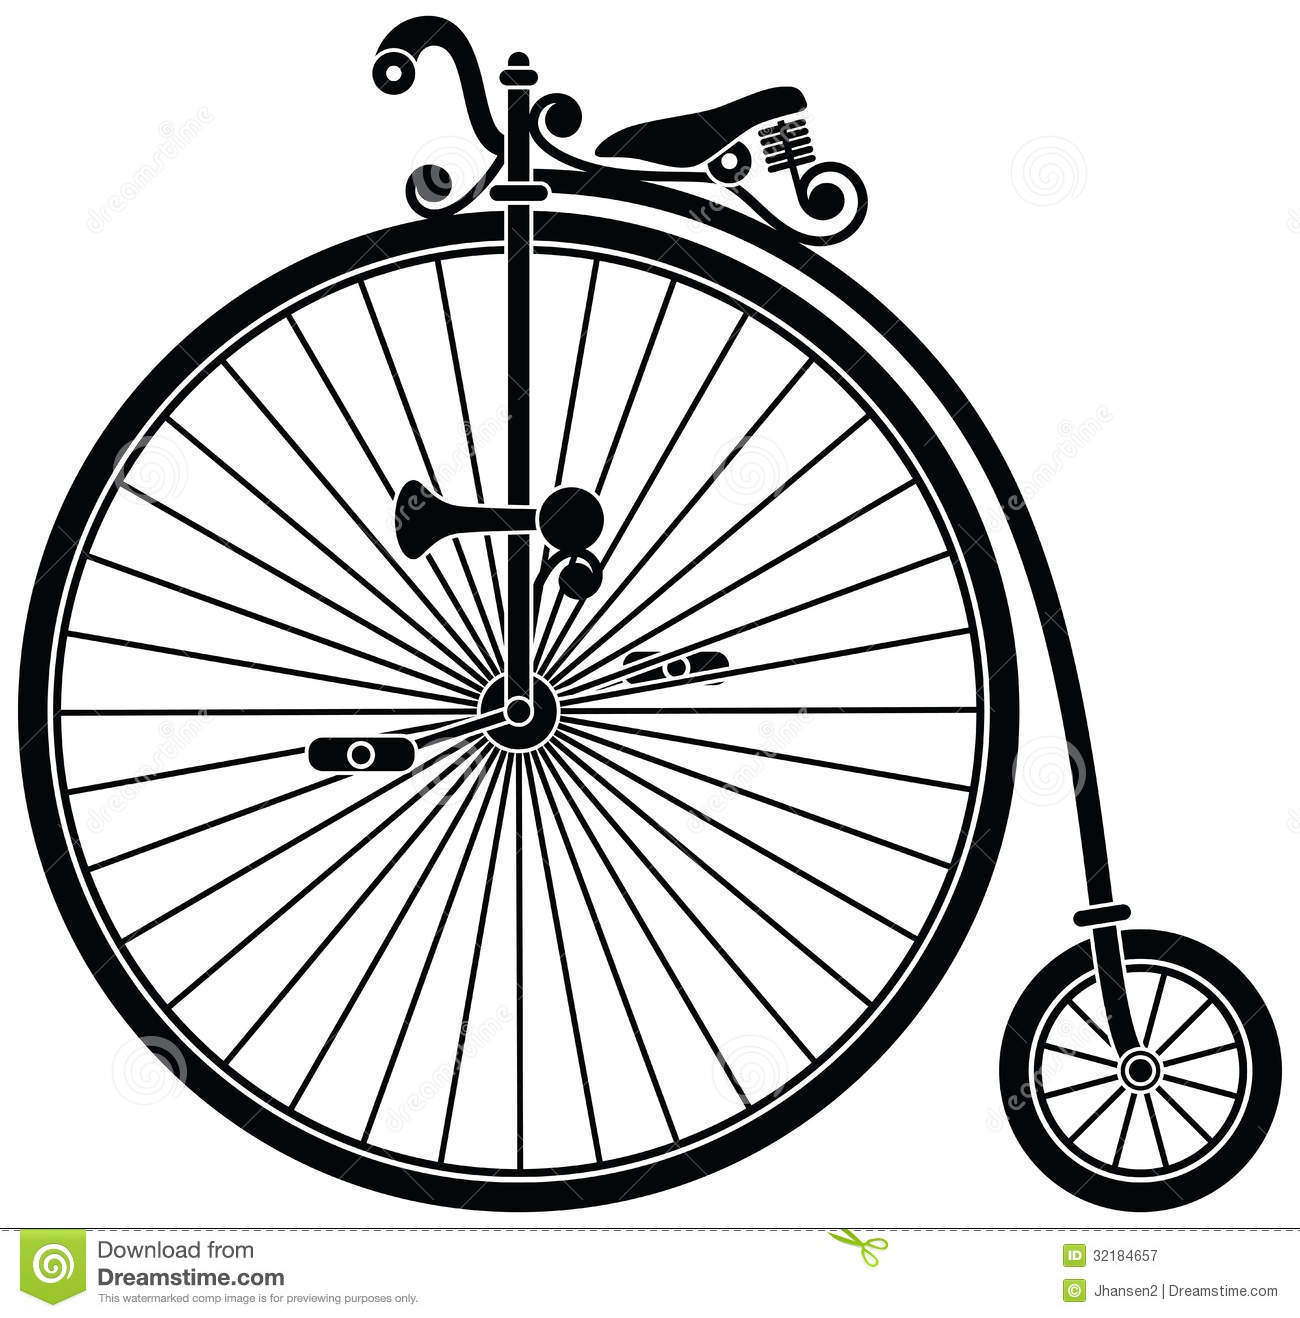 Bicycle clipart line drawing Clipart bike%20wheel%20clipart Panda Images Clipart